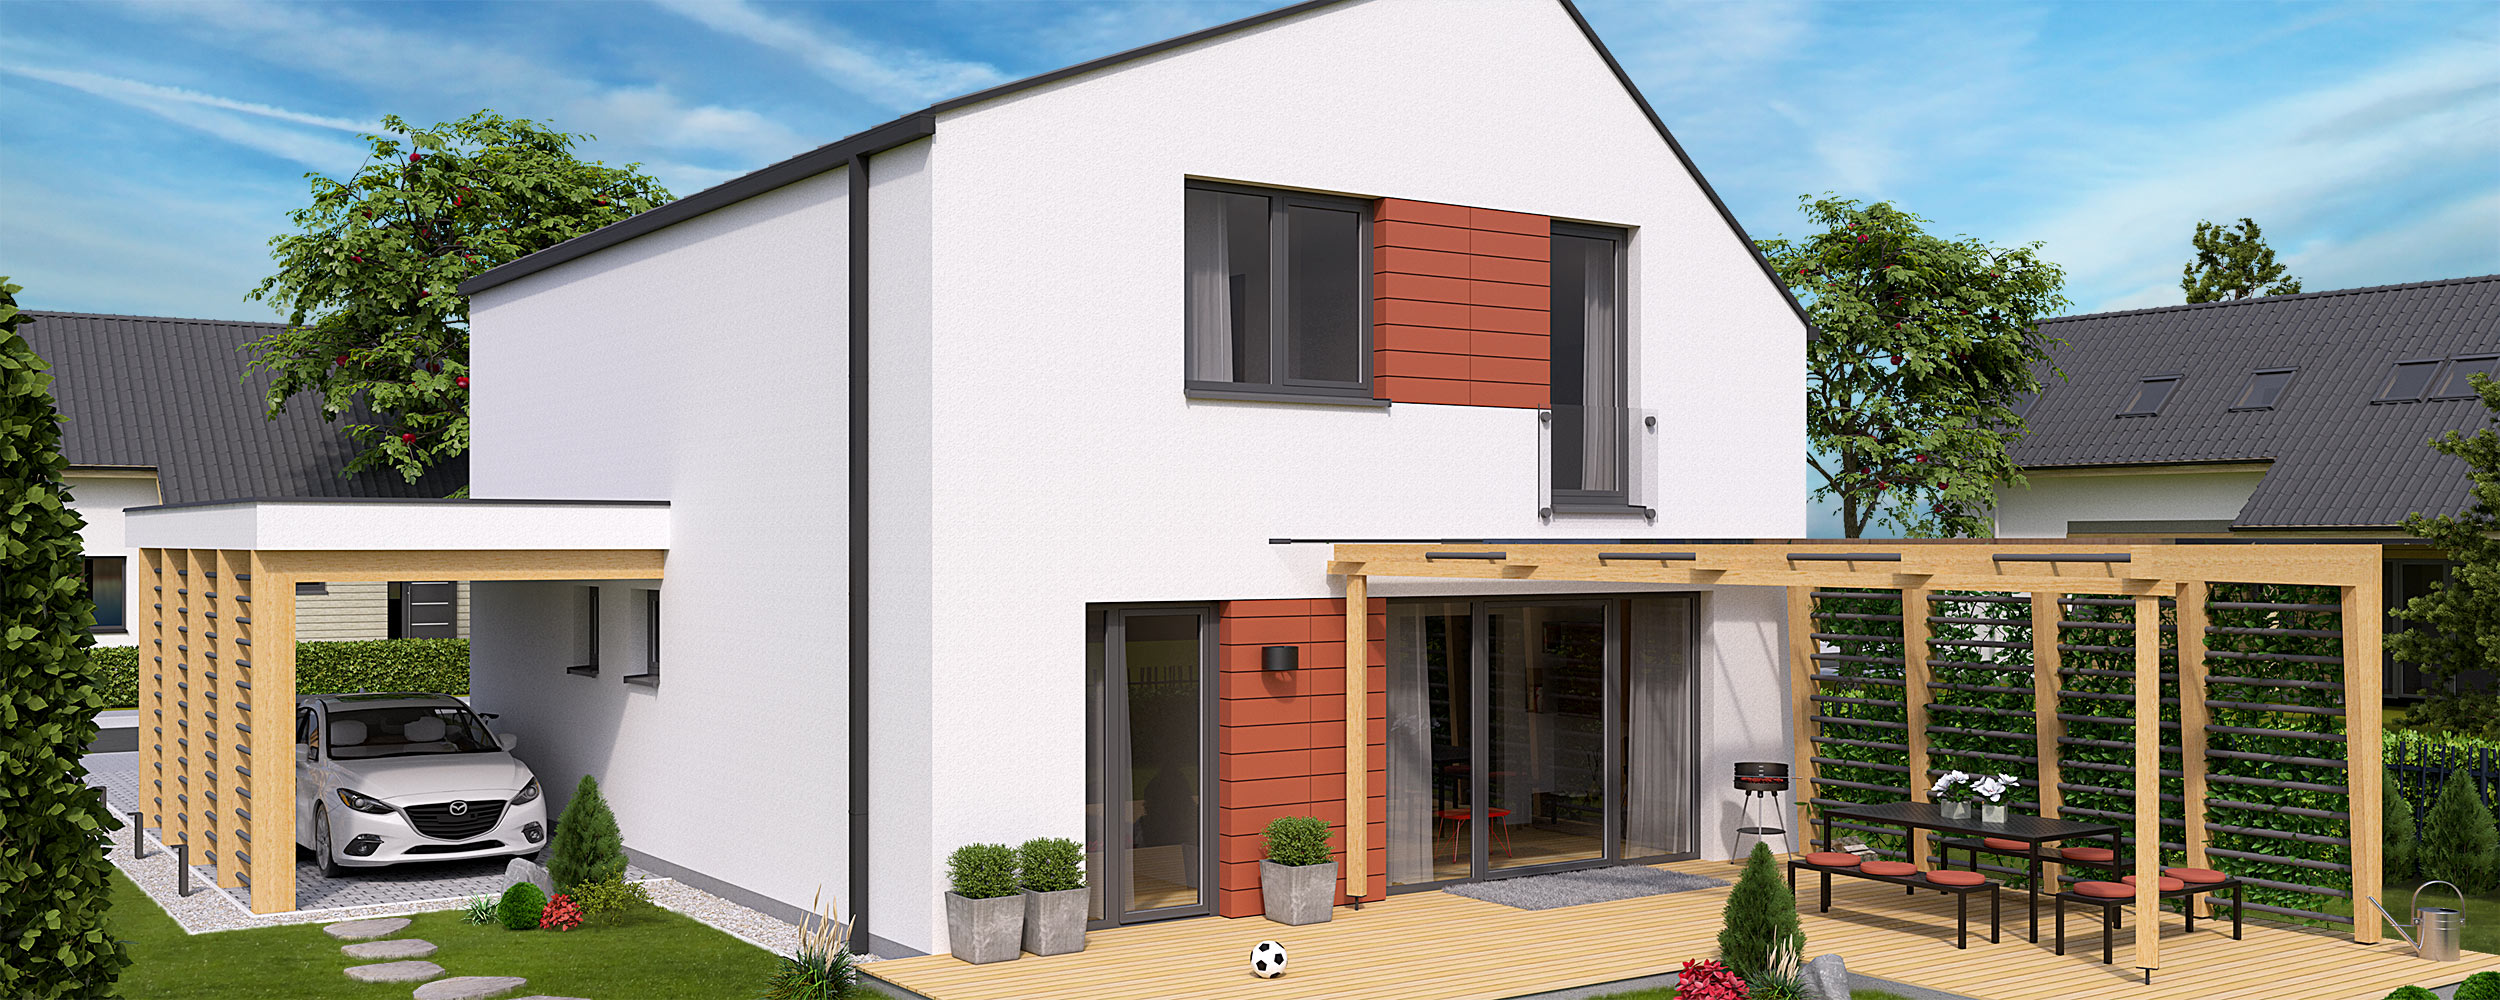 House plan i2-140 - View from garden